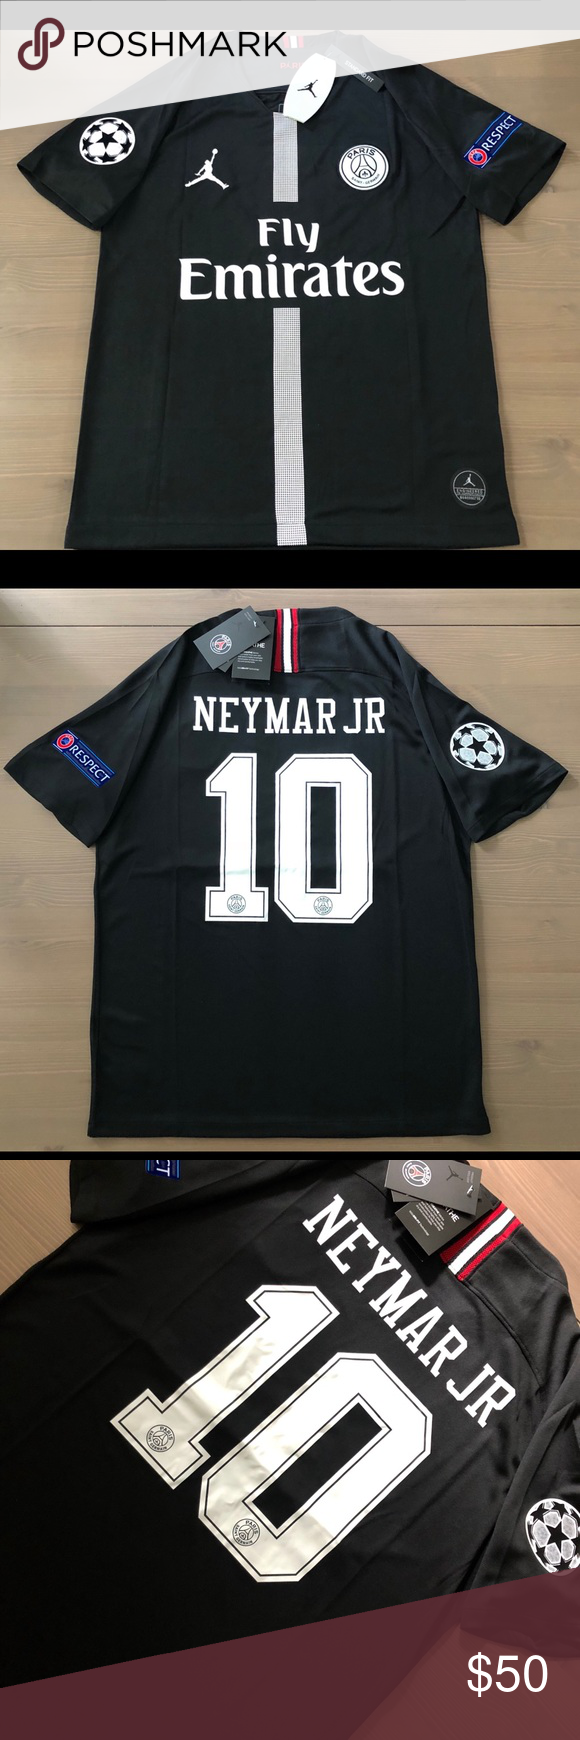 sports shoes e4d3e 0f0a4 PSG Jordan black Neymar Jr. #10 soccer Jersey men PSG Jordan ...